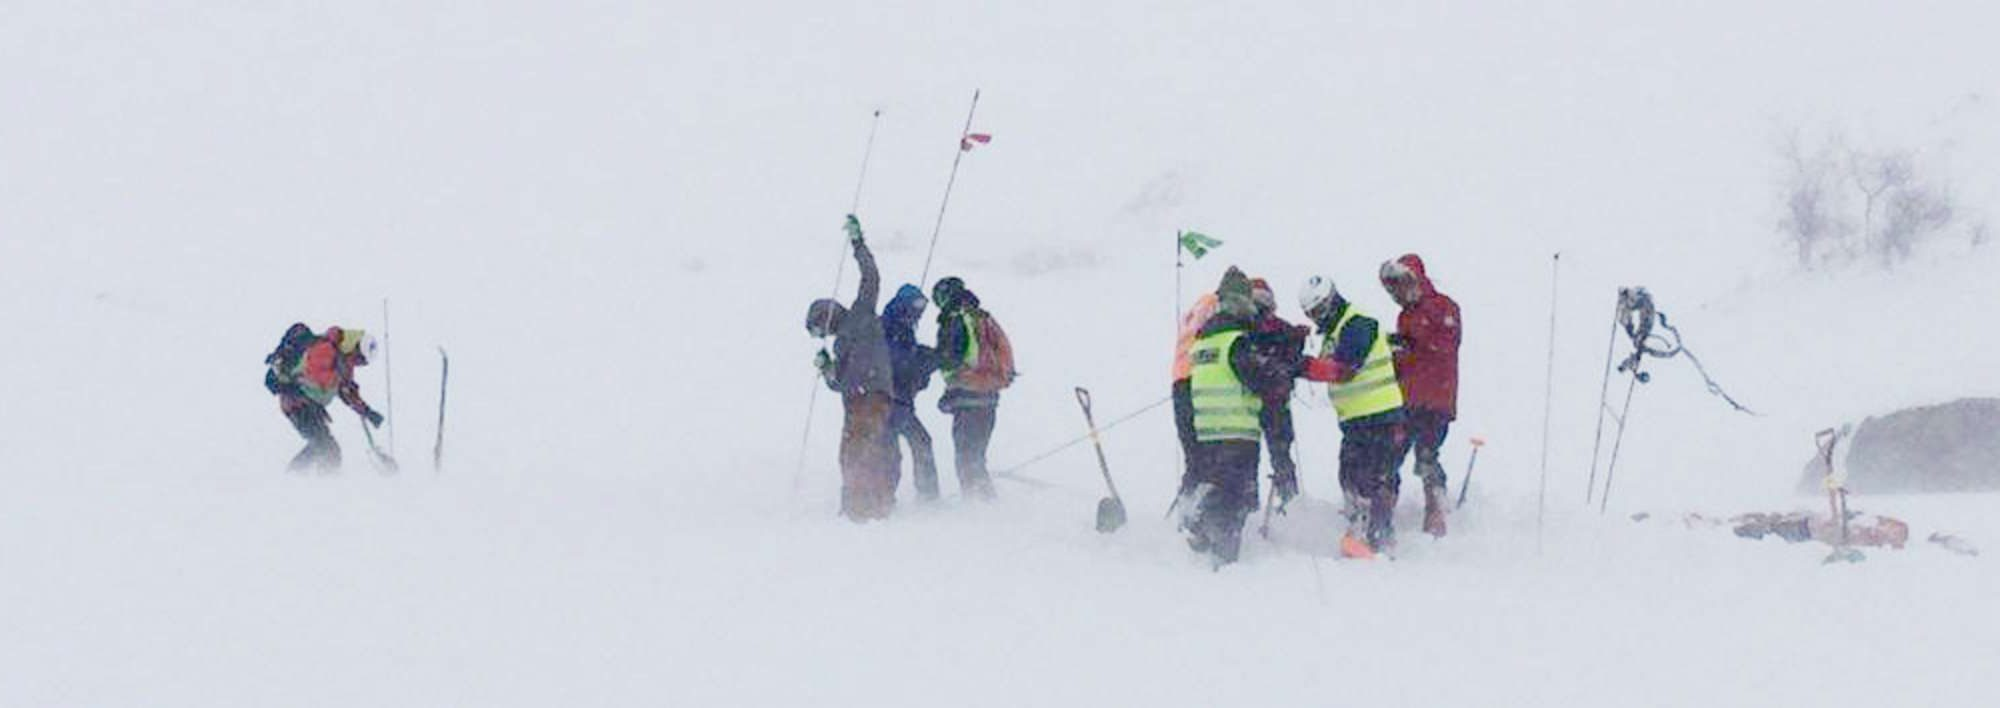 2017 Norway avalanche rescue